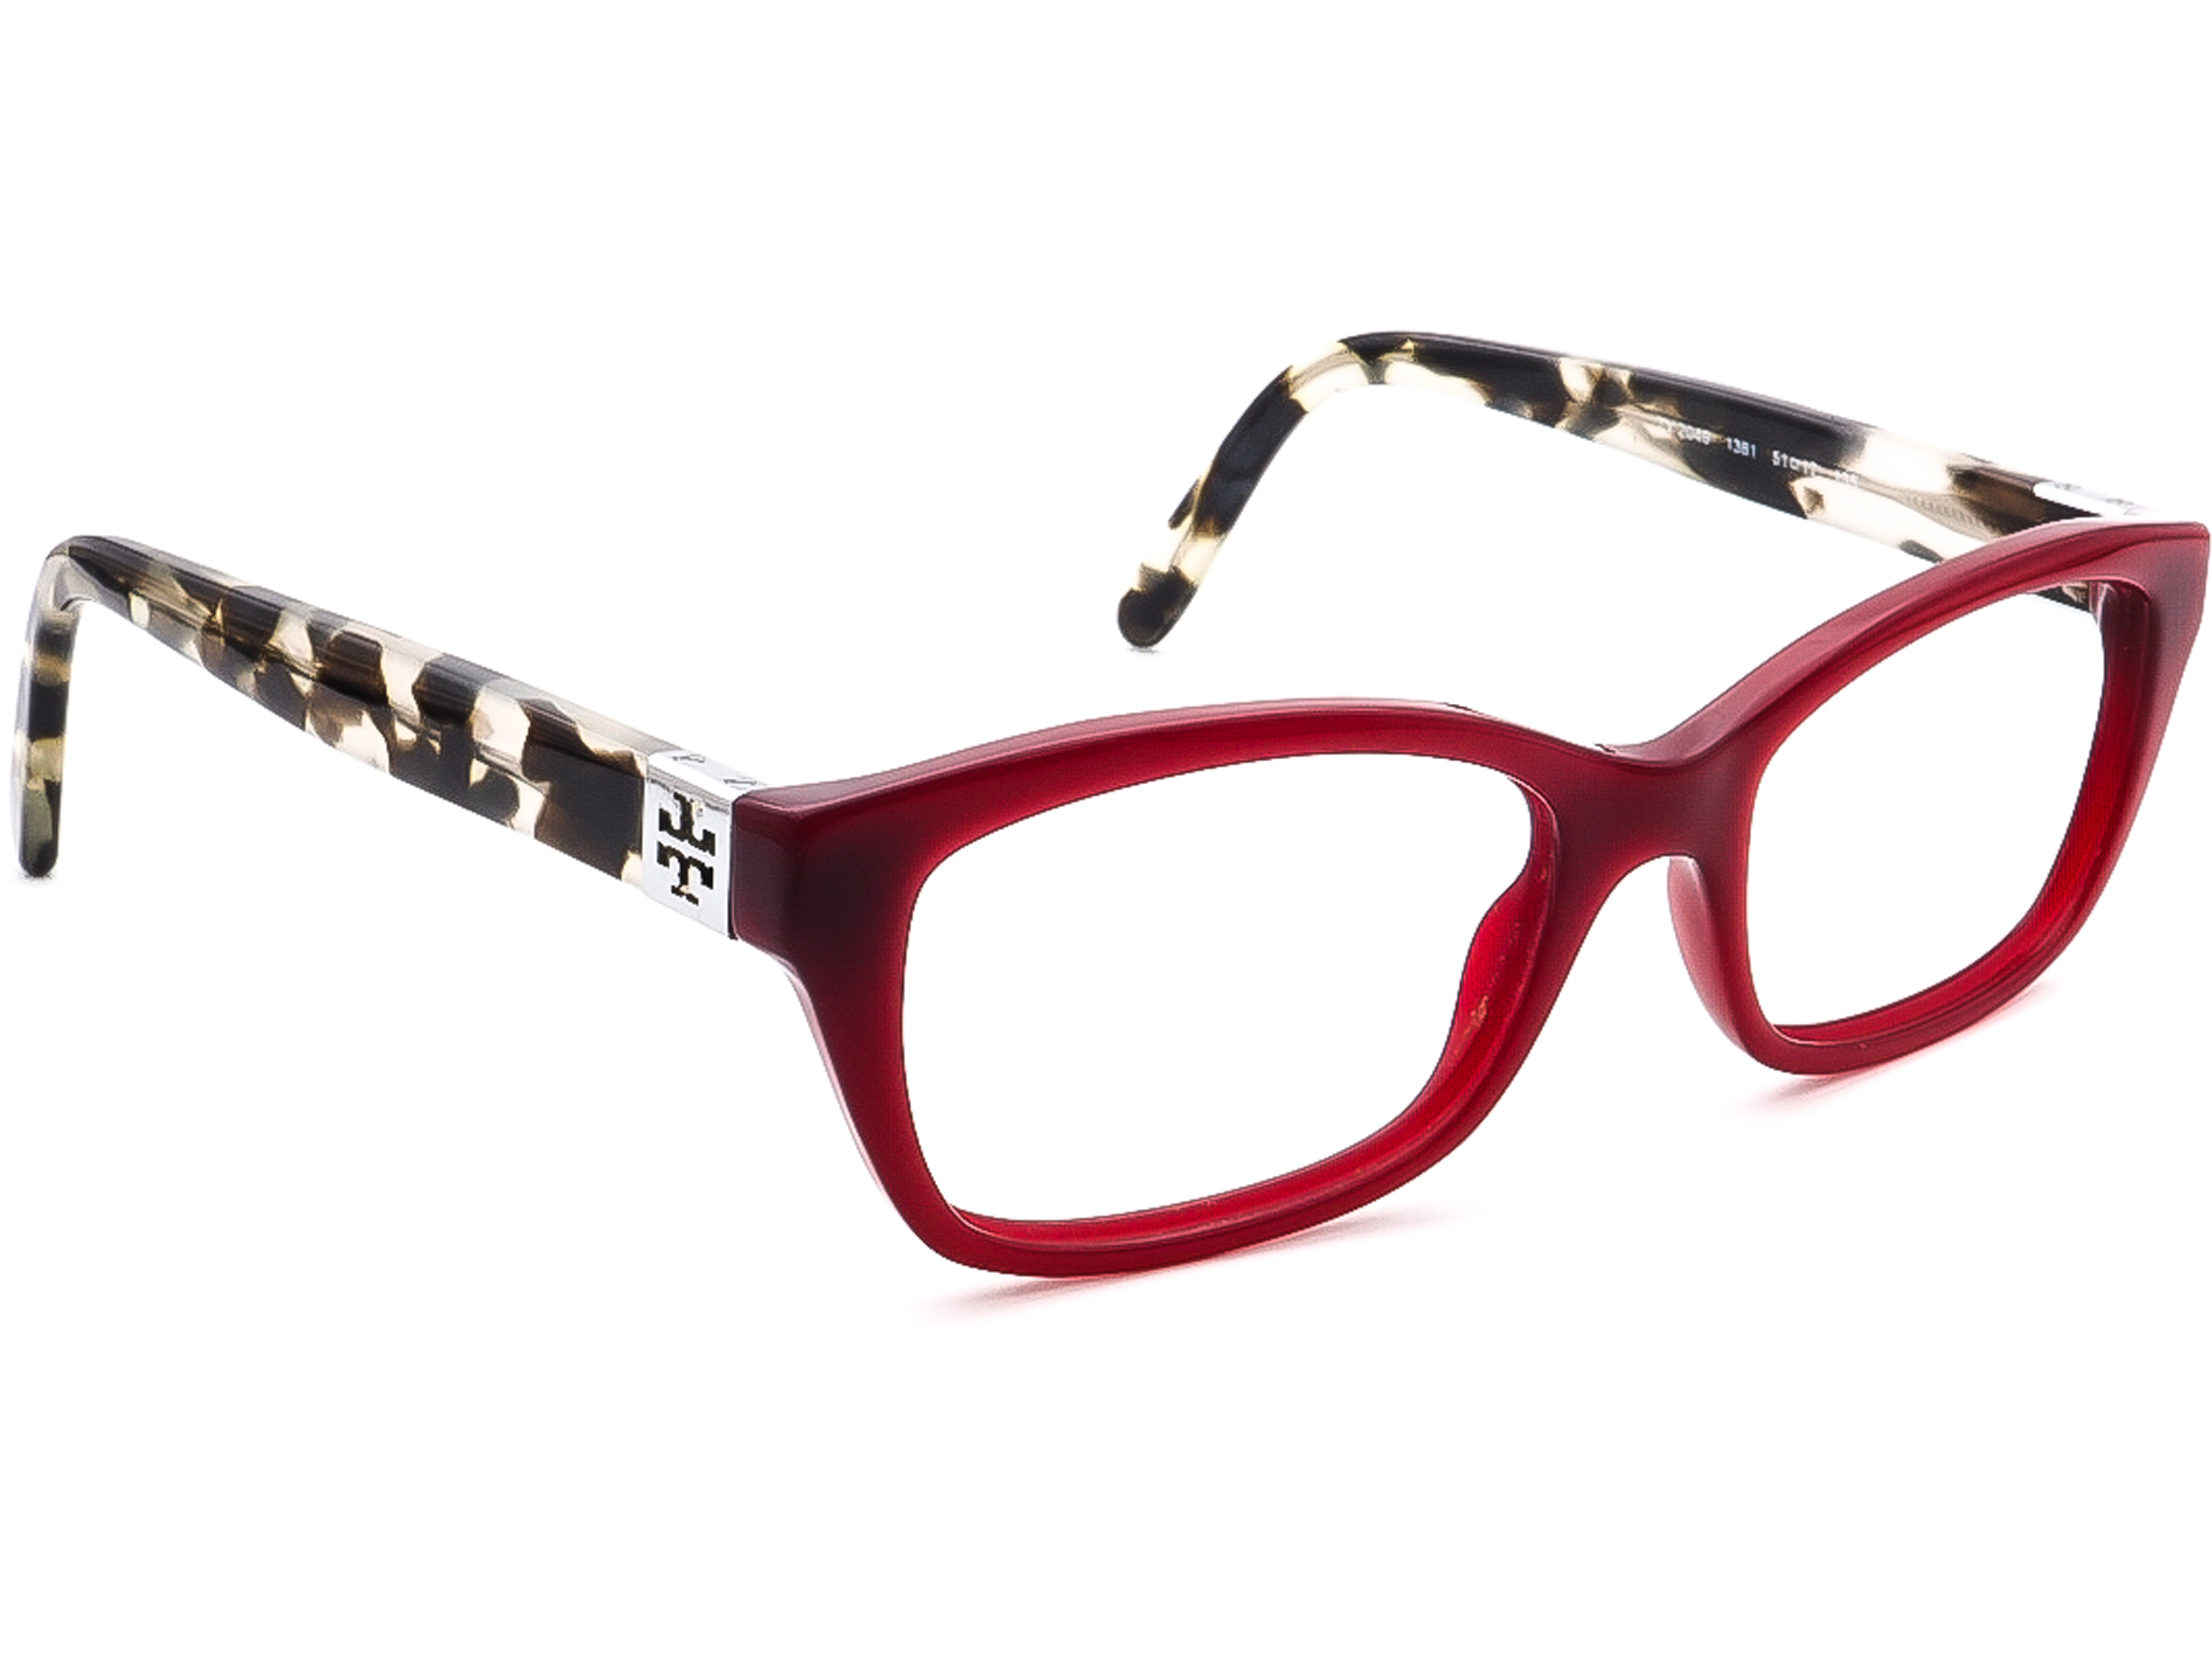 Tory Burch TY 2049 1361 Eyeglasses